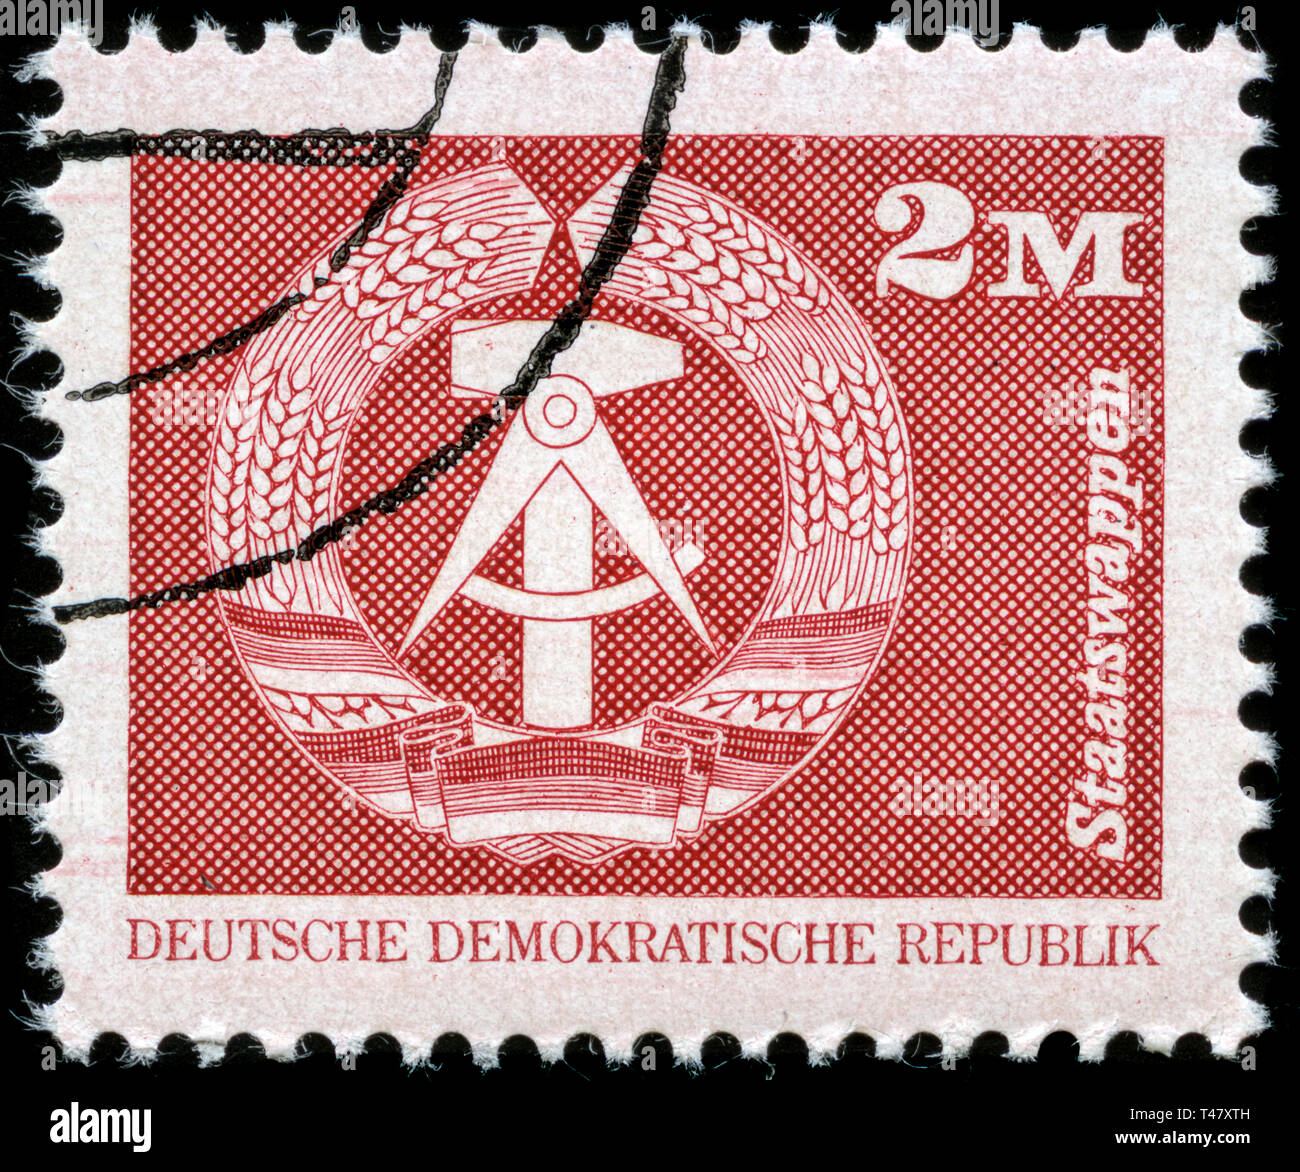 Postage stamp from East Germany (DDR)  in the  series issued in 1989 - Stock Image